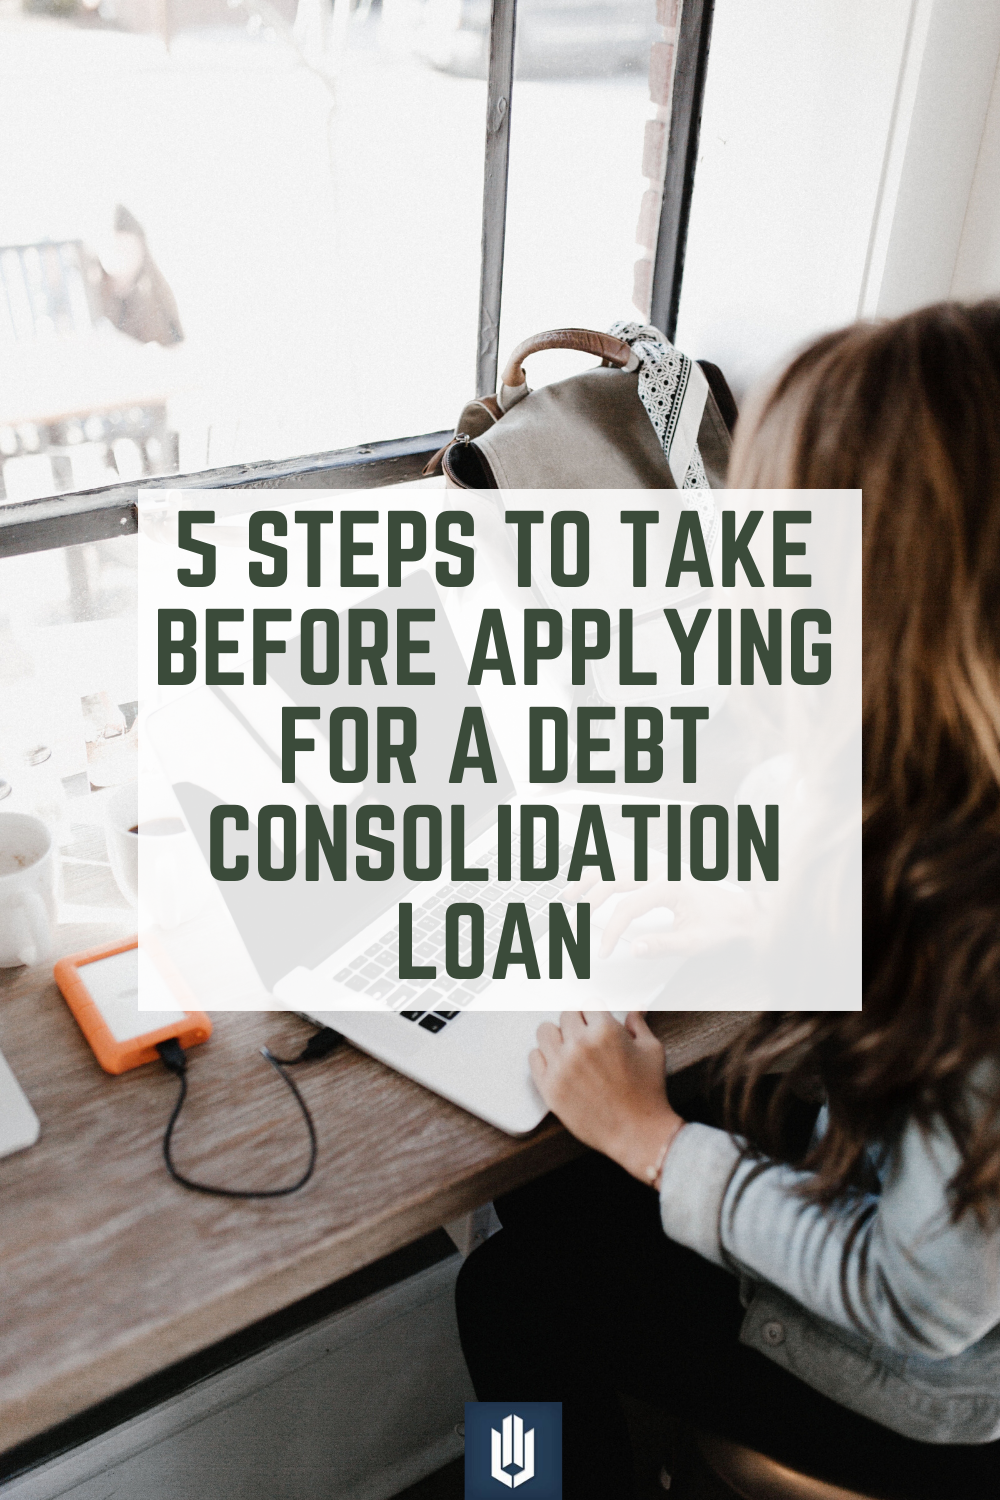 Debt Consolidation Loans What You Need To Know Lexington Law In 2020 Debt Consolidation Loans Loan Consolidation Debt Consolidation